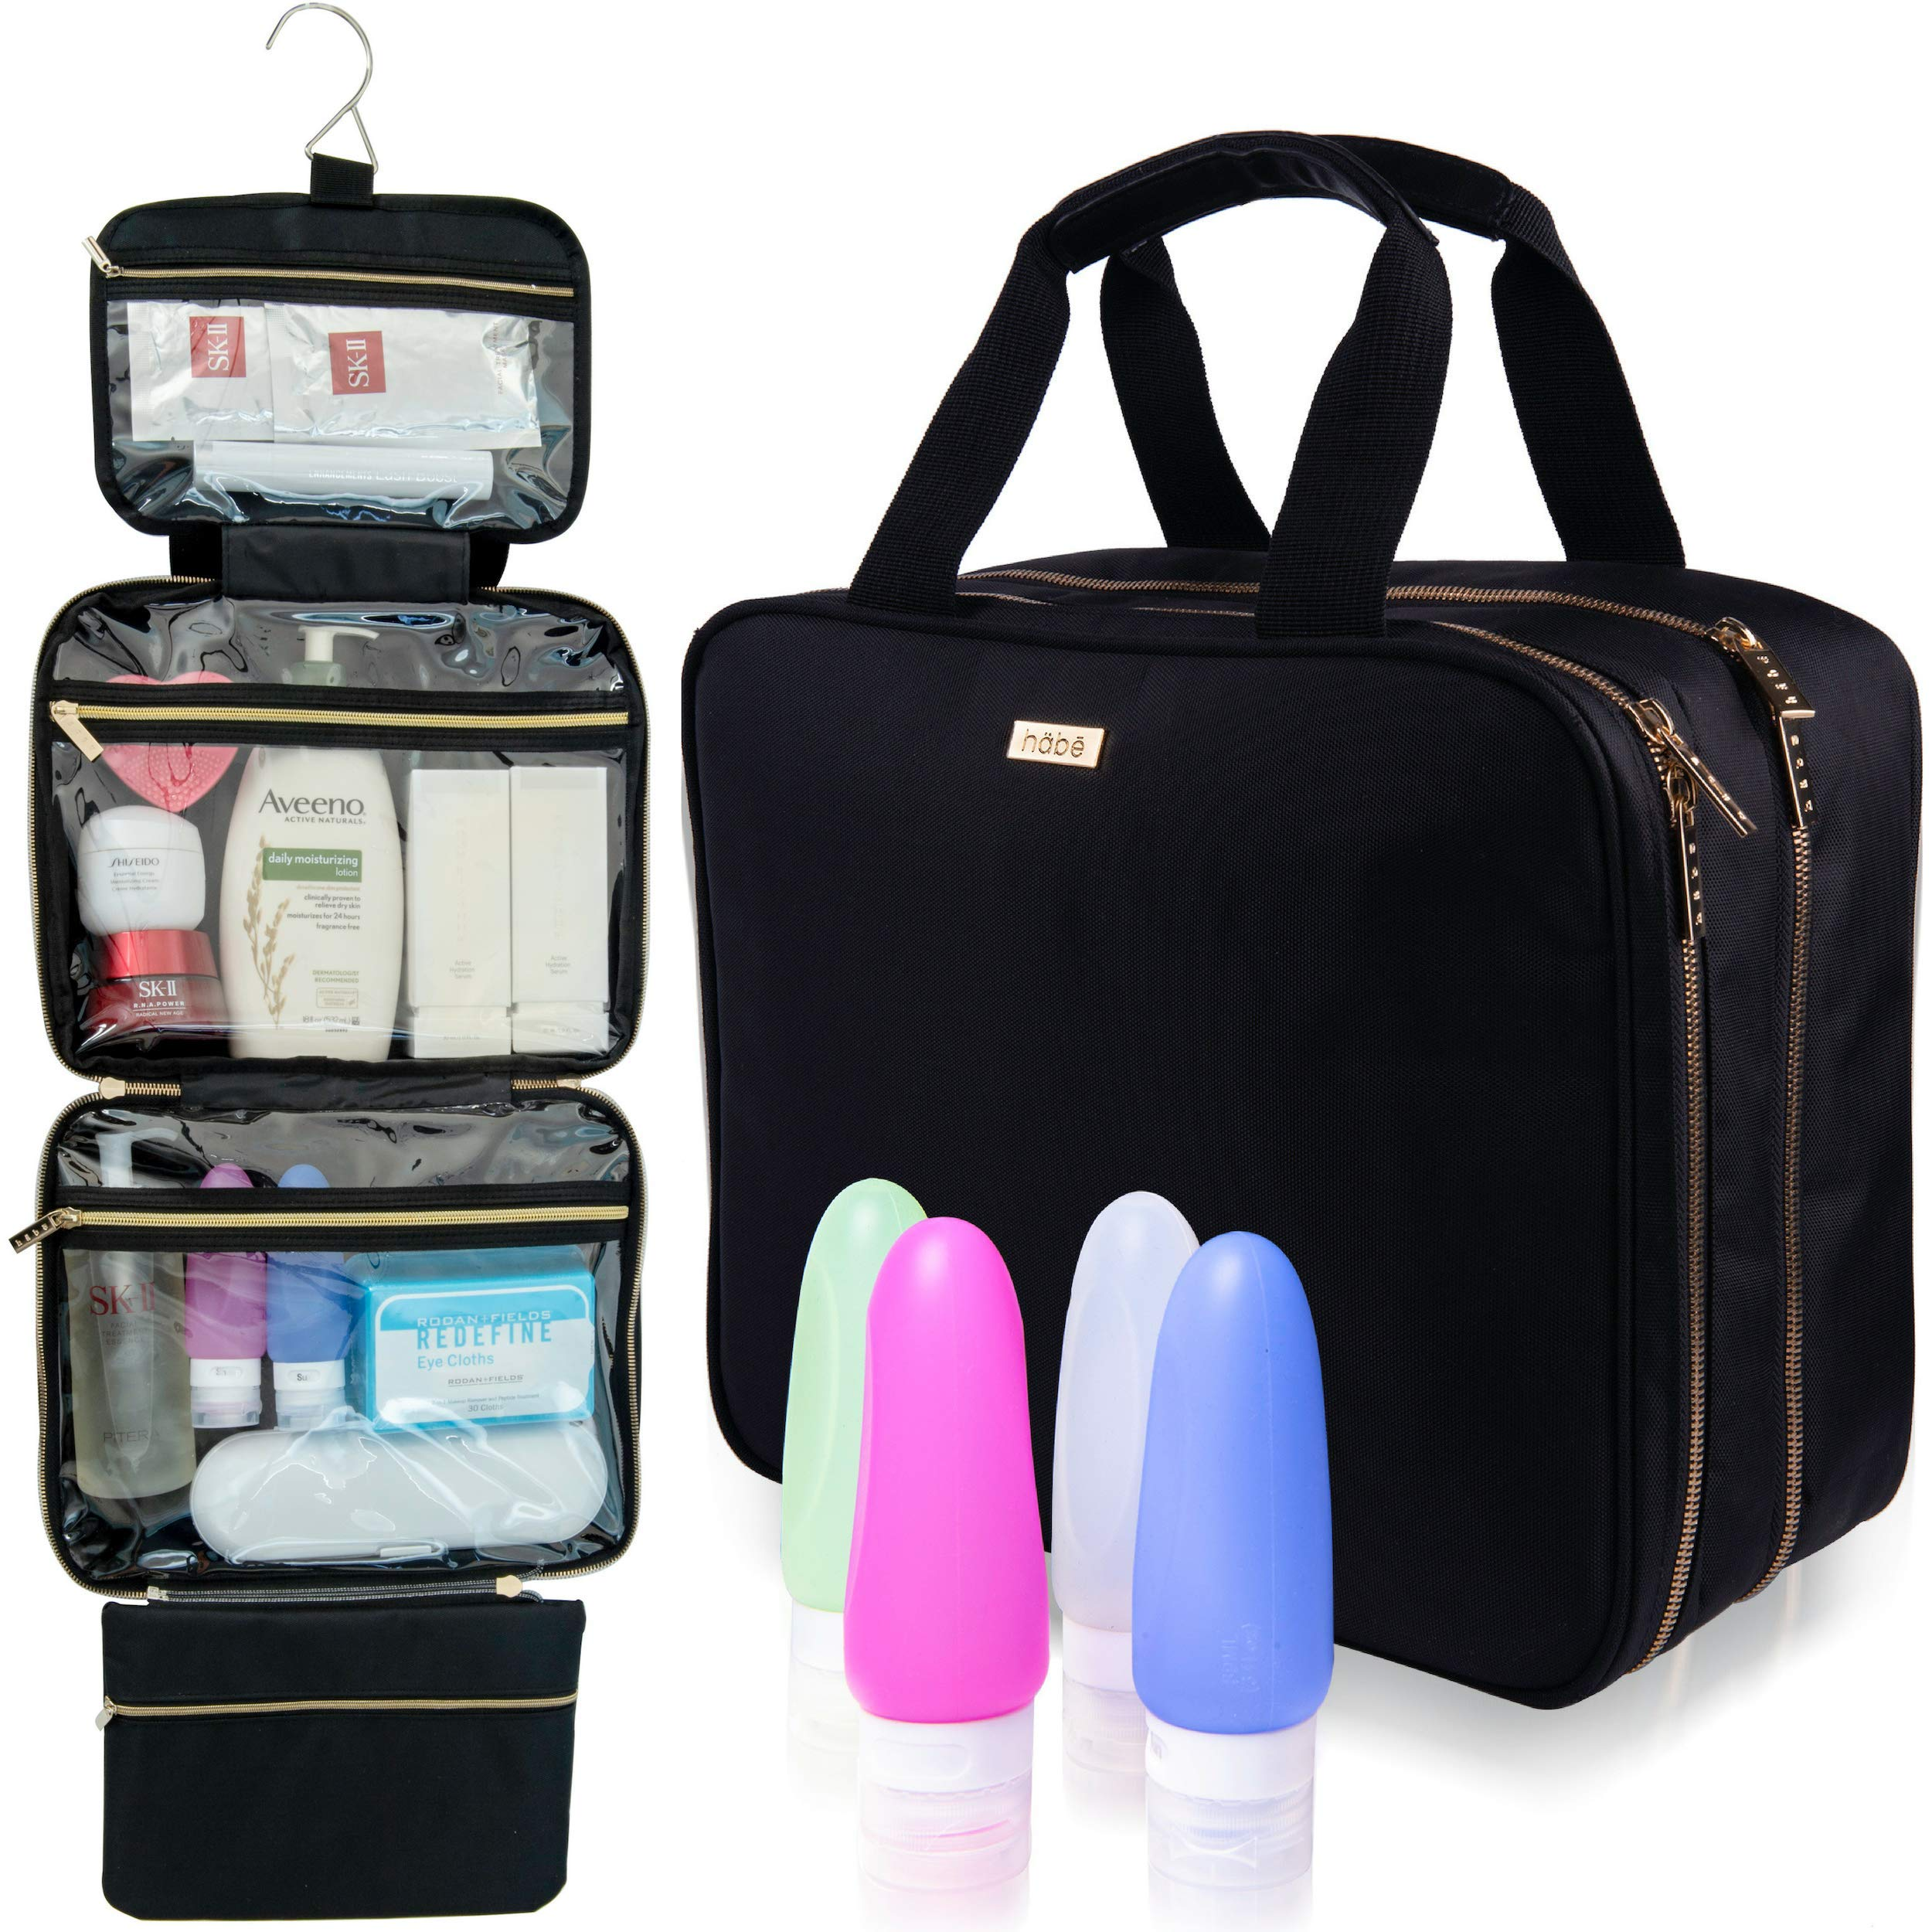 habe XL Hanging Travel Toiletry Bag | 4 BONUS Travel Bottles | Fits FULL SIZE Toiletries | Travel Makeup Bag | EXTRA LARGE Cosmetic Bags Organizer for Women | 3-IN-1 Bathroom, Make Up and Shower Kit by häbe (Image #1)